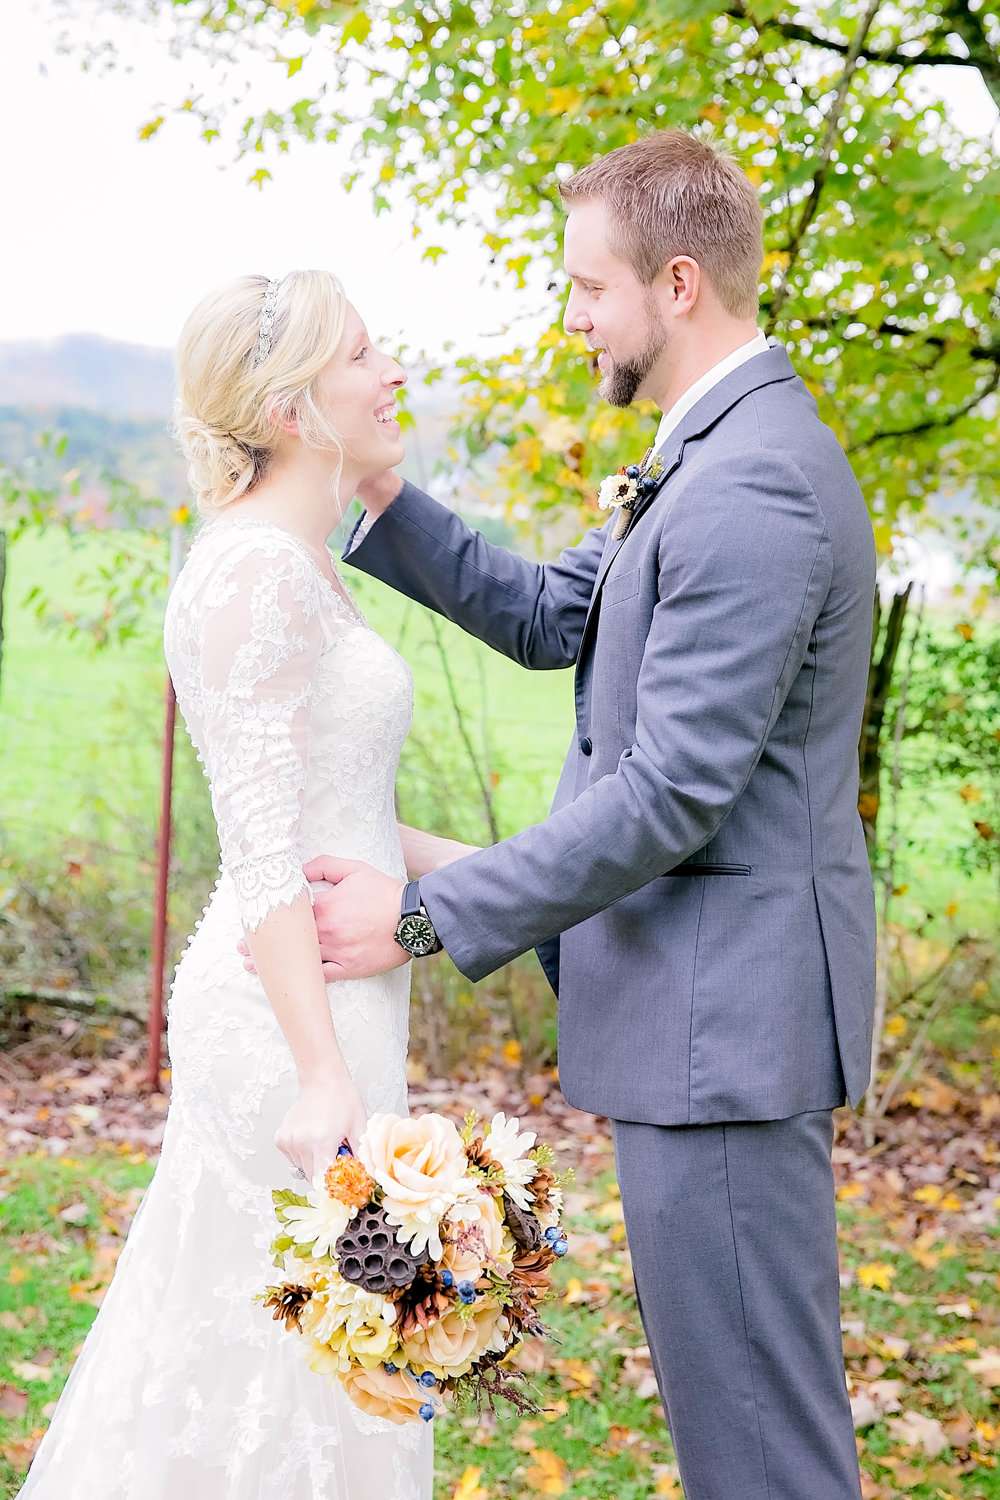 Mountain City, TN farm wedding, East Tennessee fall wedding, bride and groom first look